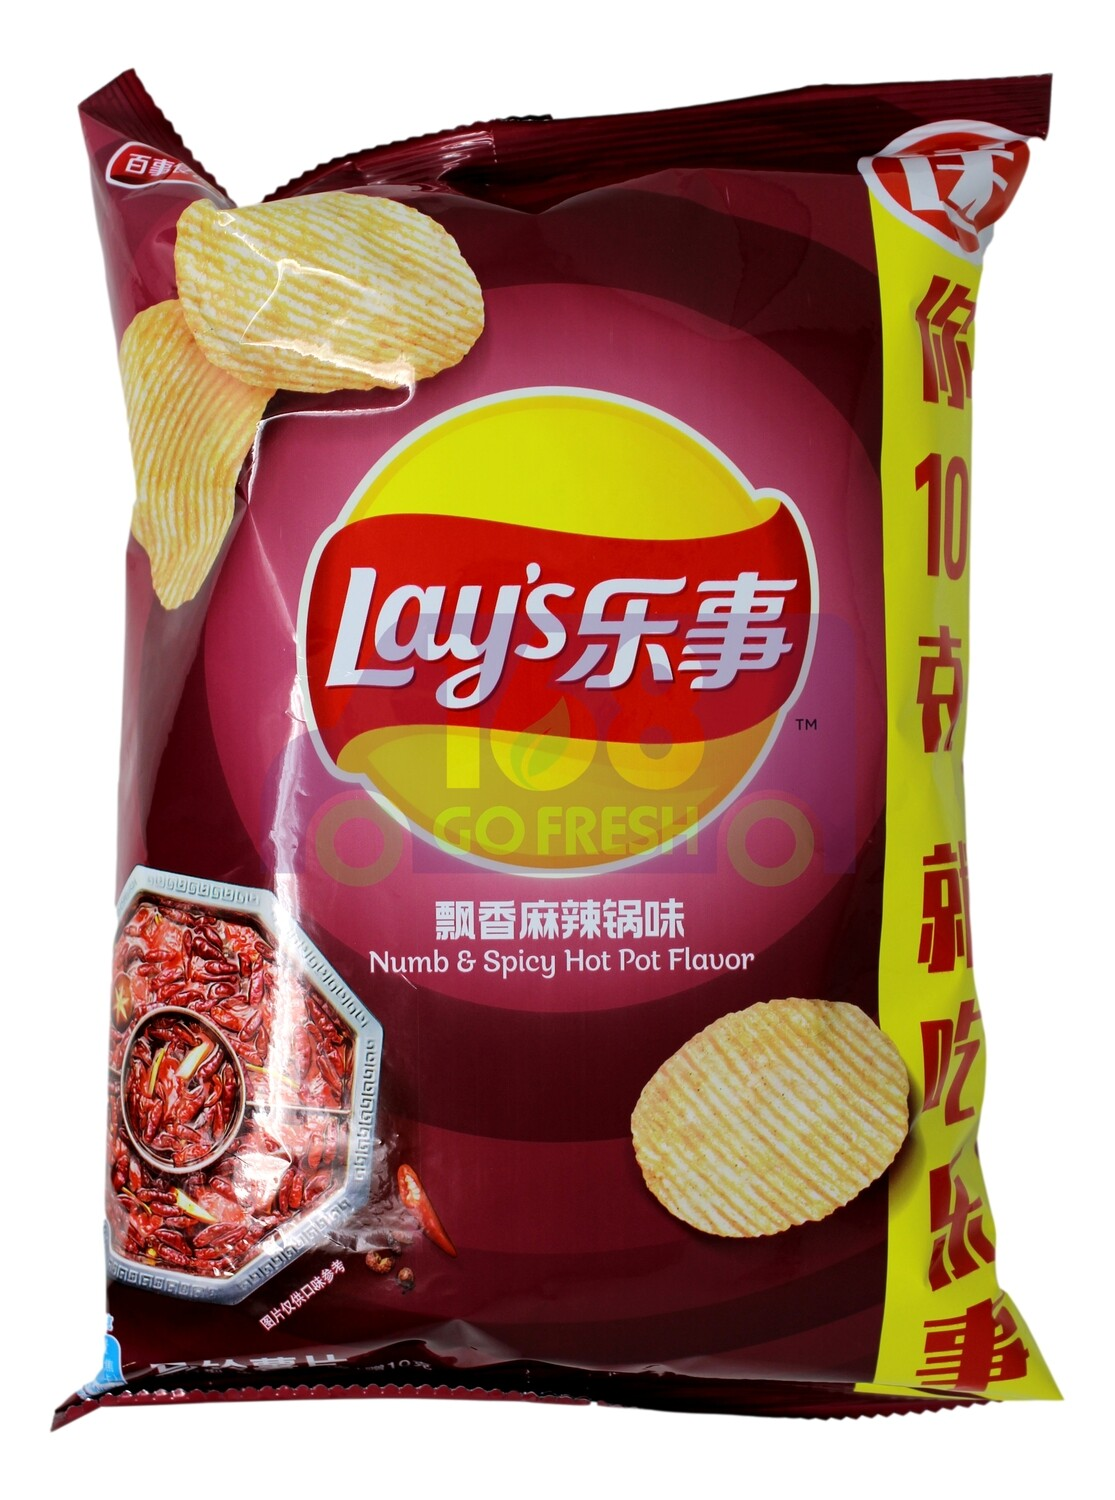 LAY'S NUMB&SPICY HOT POT FLAVOR CHIPS 乐事 马铃薯片  飘香麻辣锅味(70G)